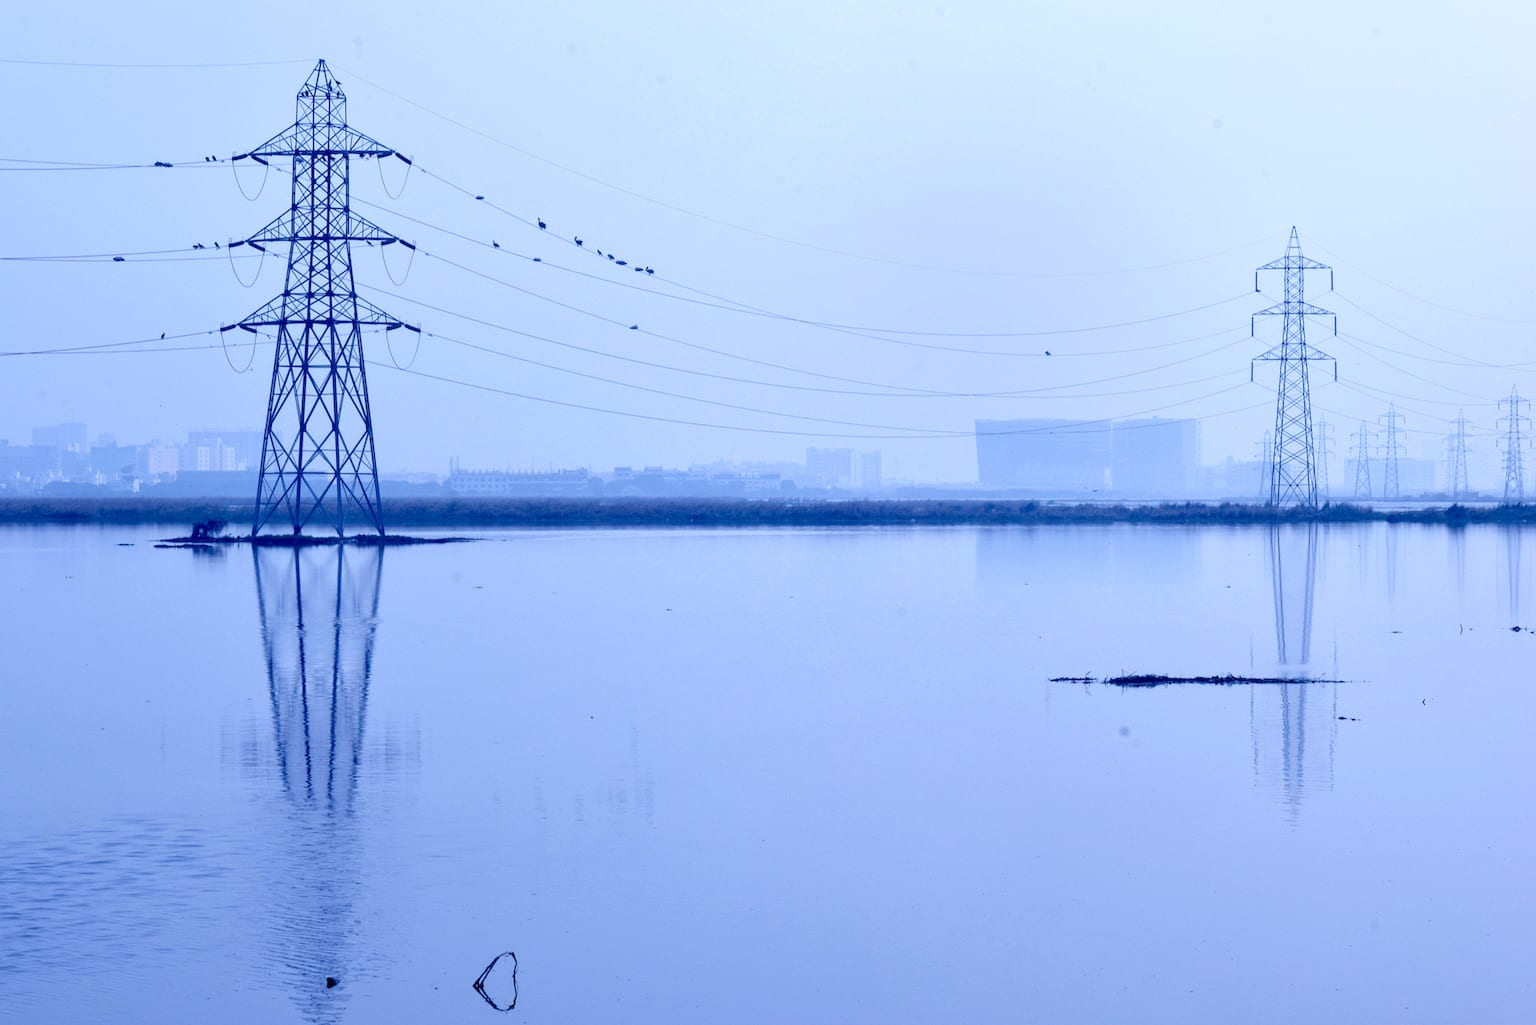 A portion of the Pallikaranai marshland under water, with the skyline of the Chennai city visible in the distance. Photo: RaghavPrasanna/Shutterstock  Since February 2008 greater flamingos have been arriving at the Pallikaranai marshland in Chennai every winter. Early in the morning they can be seen feeding, with the buildings of the city only a hop away. Cover photo: ruban m/Shutterstock